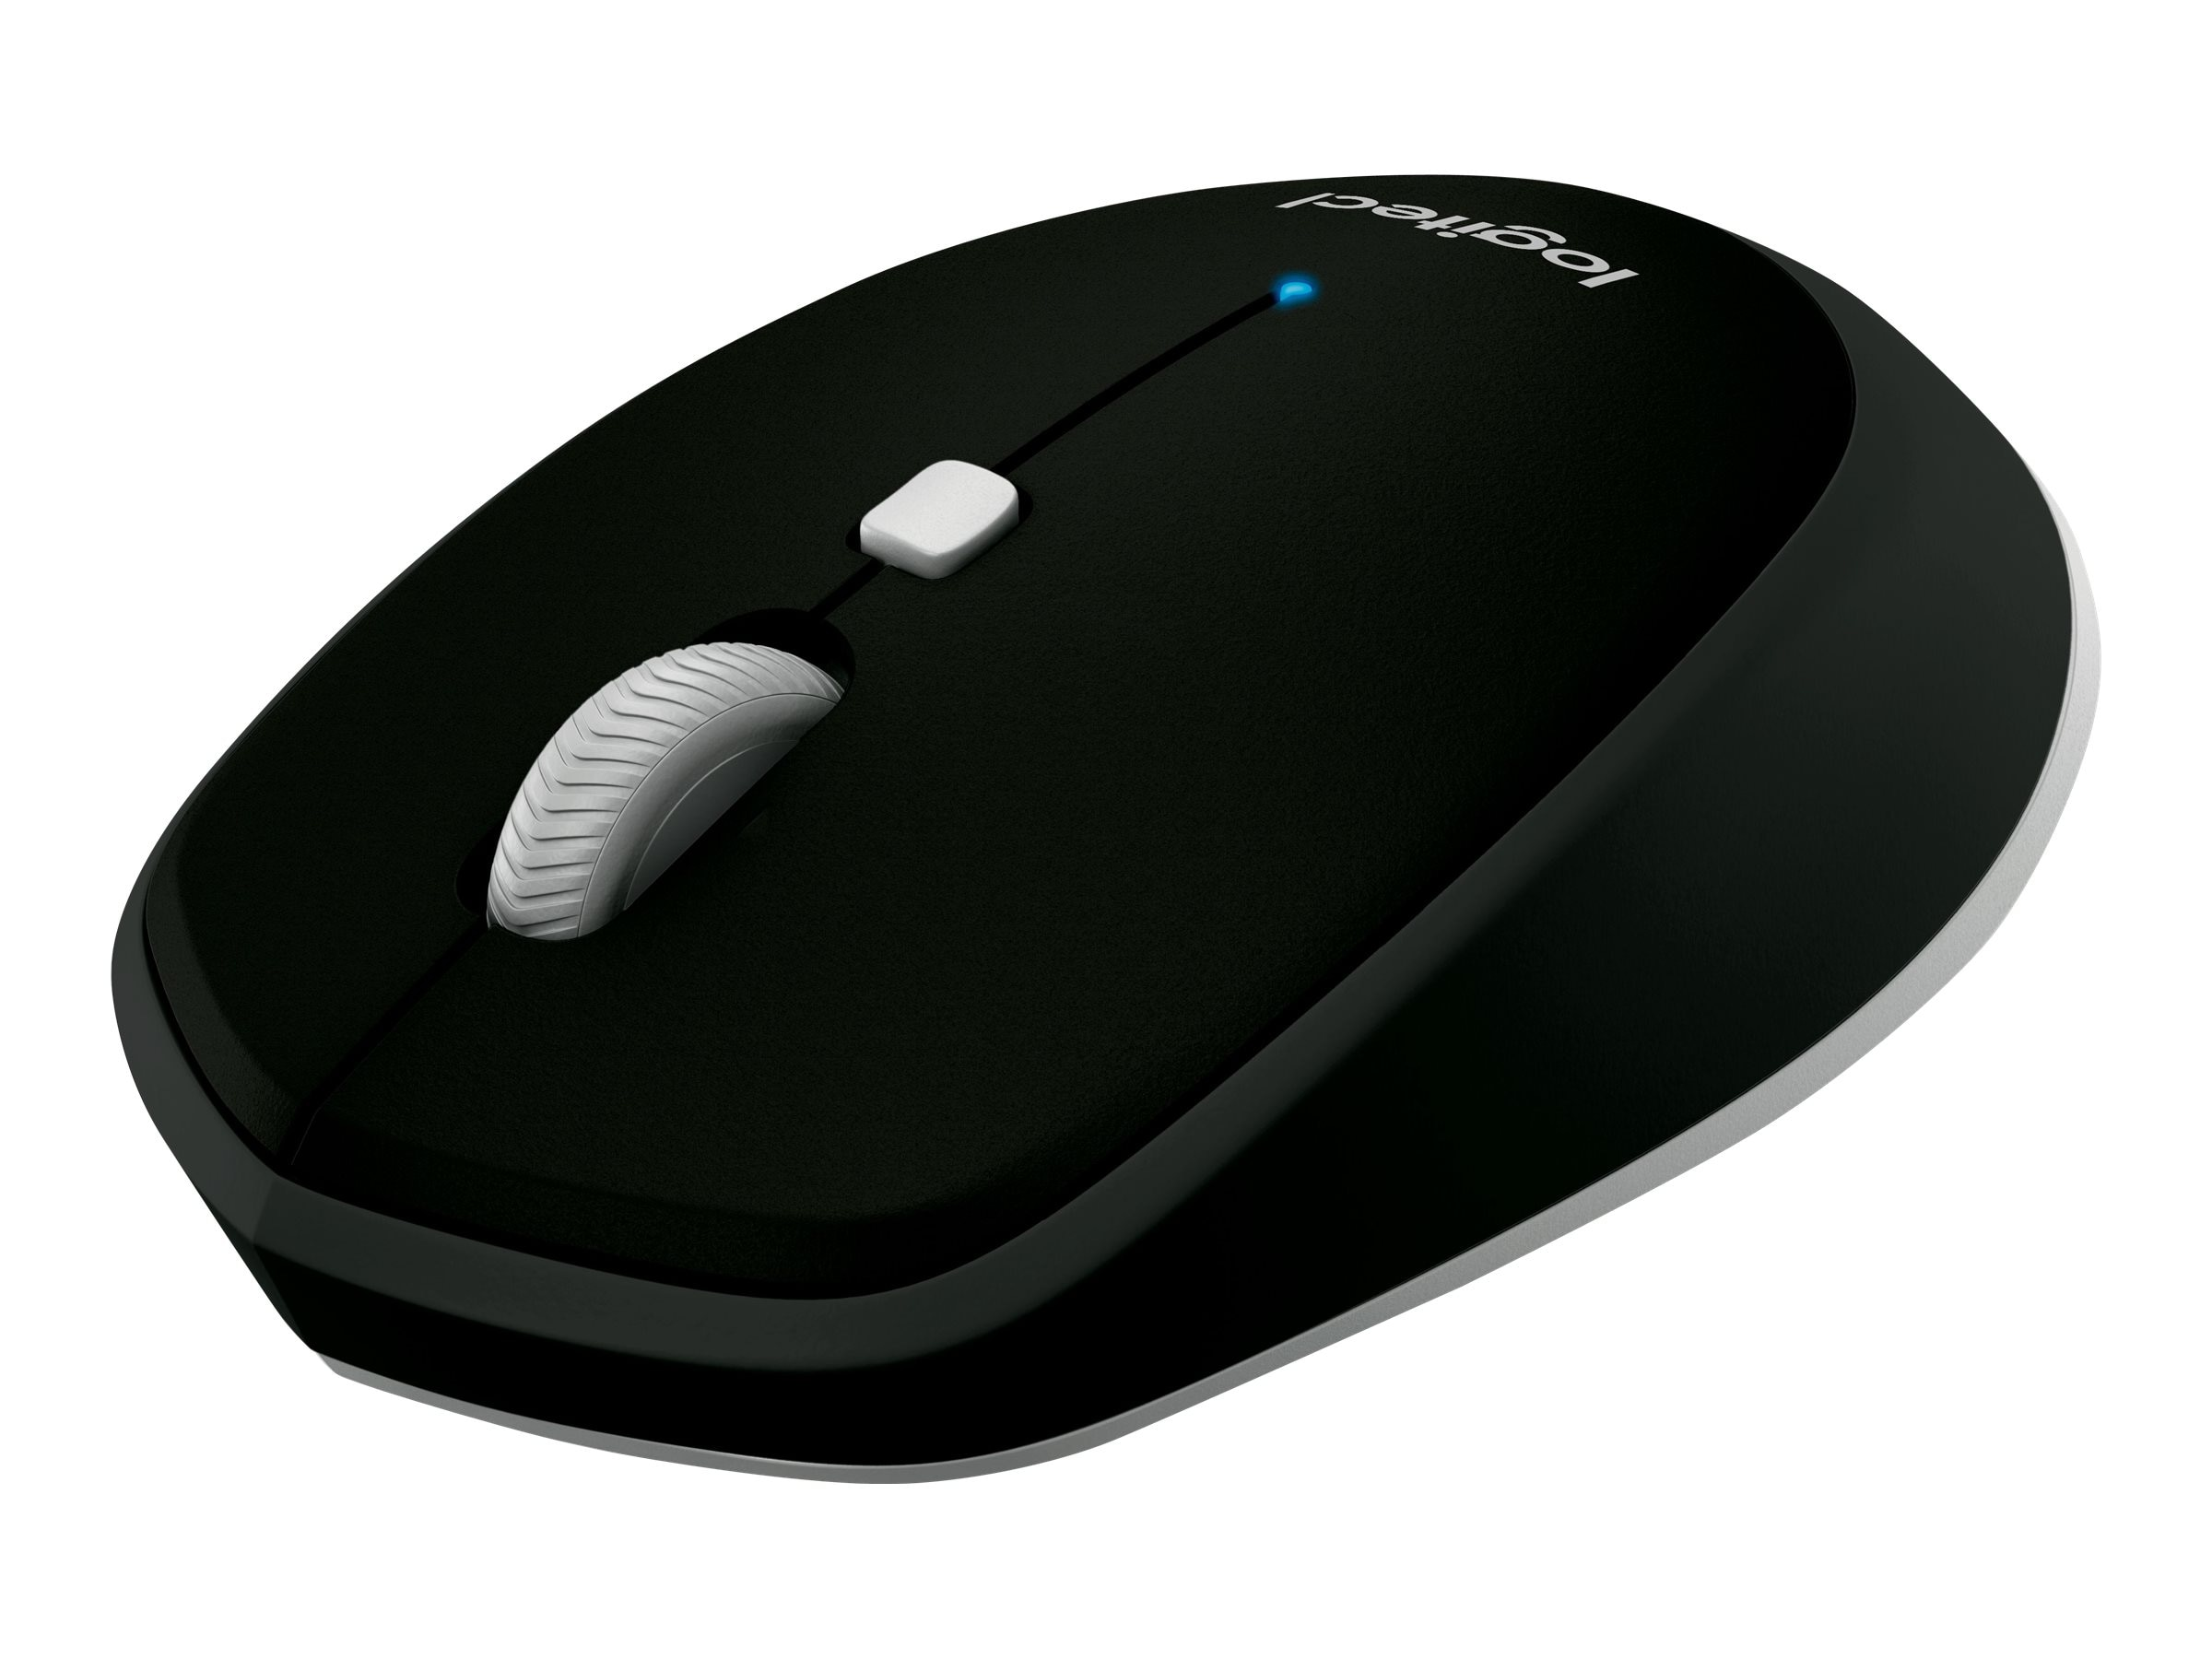 Logitech M535 BT Mouse, Black, 910-004432